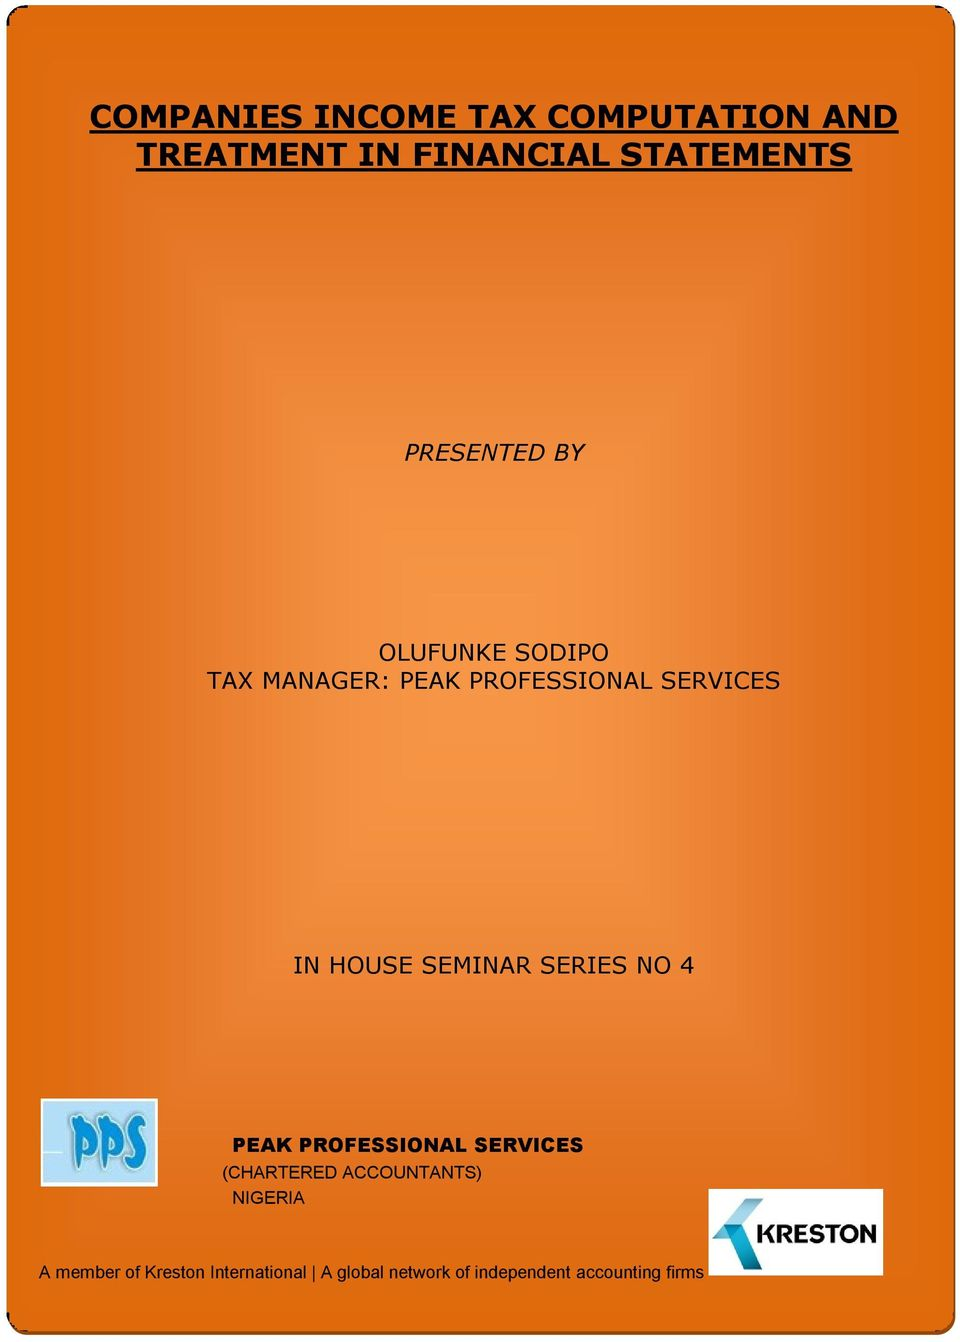 SEMINAR SERIES NO 4 PEAK PROFESSIONAL SERVICES (CHARTERED ACCOUNTANTS)